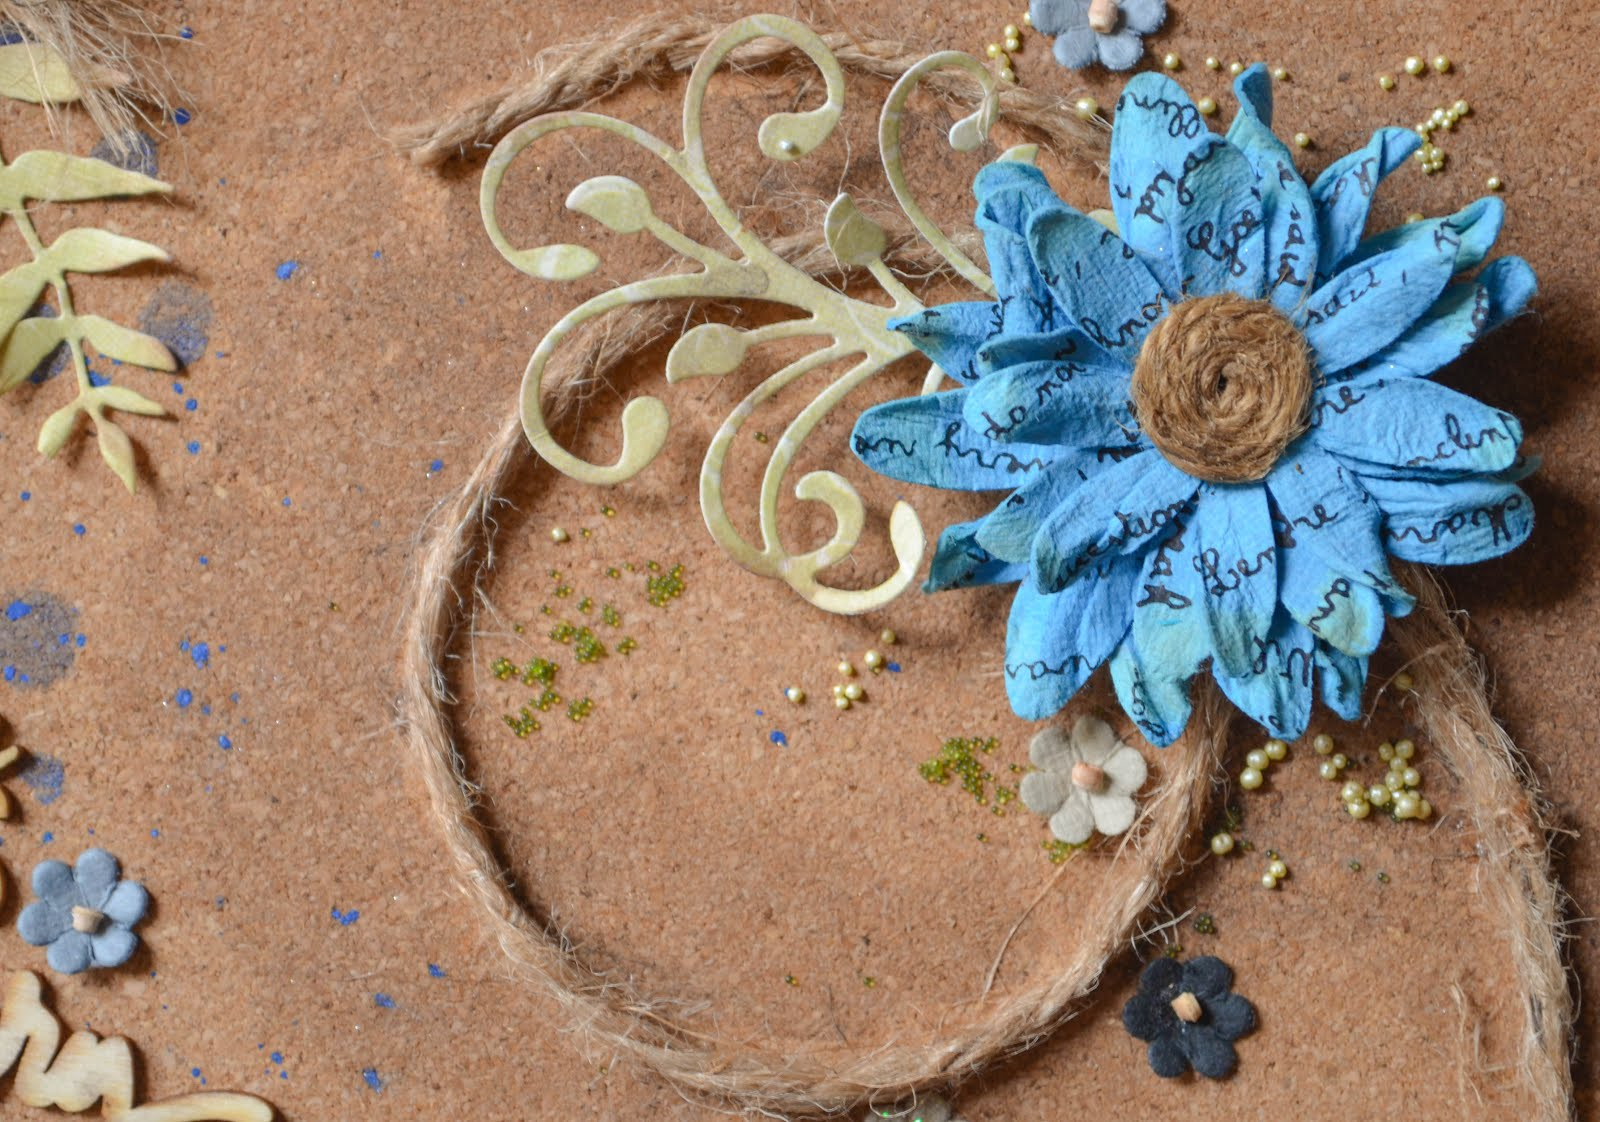 Blue and brown scrapbook layout featuring cork, ruler, die cut leaves, rustic handmade flowers, wood veneers, tiny flowers, acrylic paint, and jute string rope with prills and stenciling